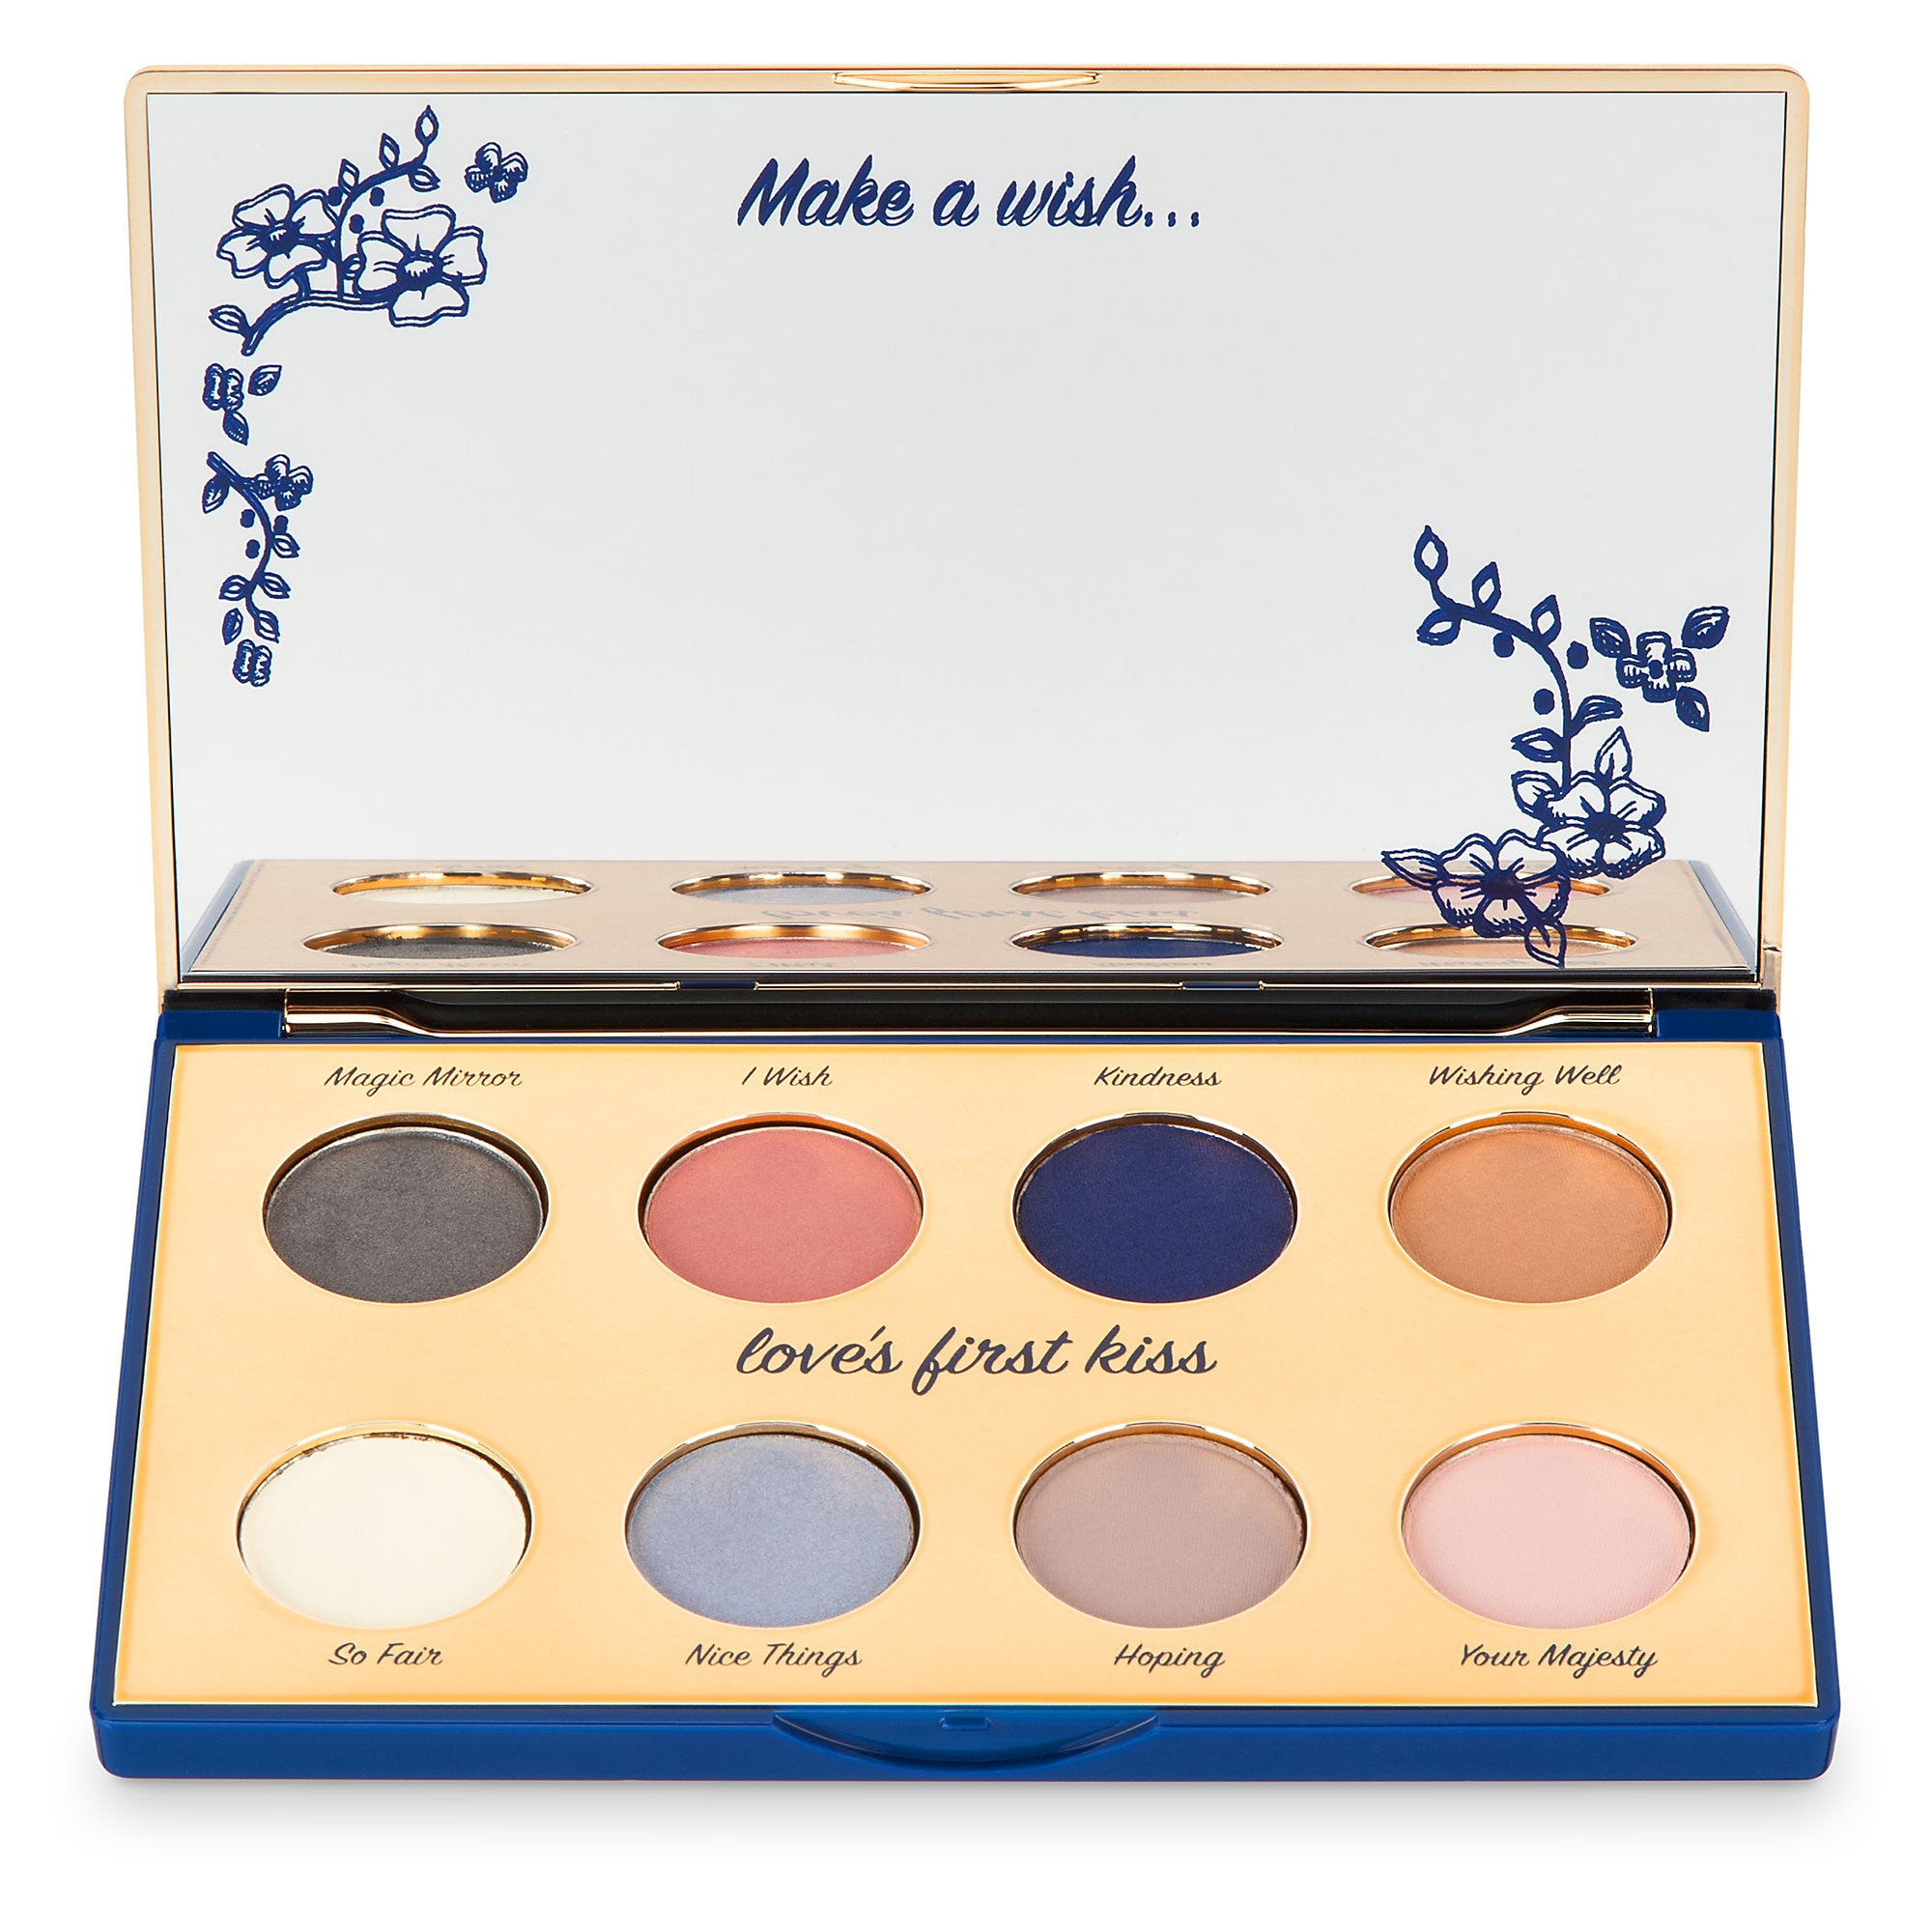 Snow White I'm Wishing Eyeshadow Palette by Bésame Cosmetics